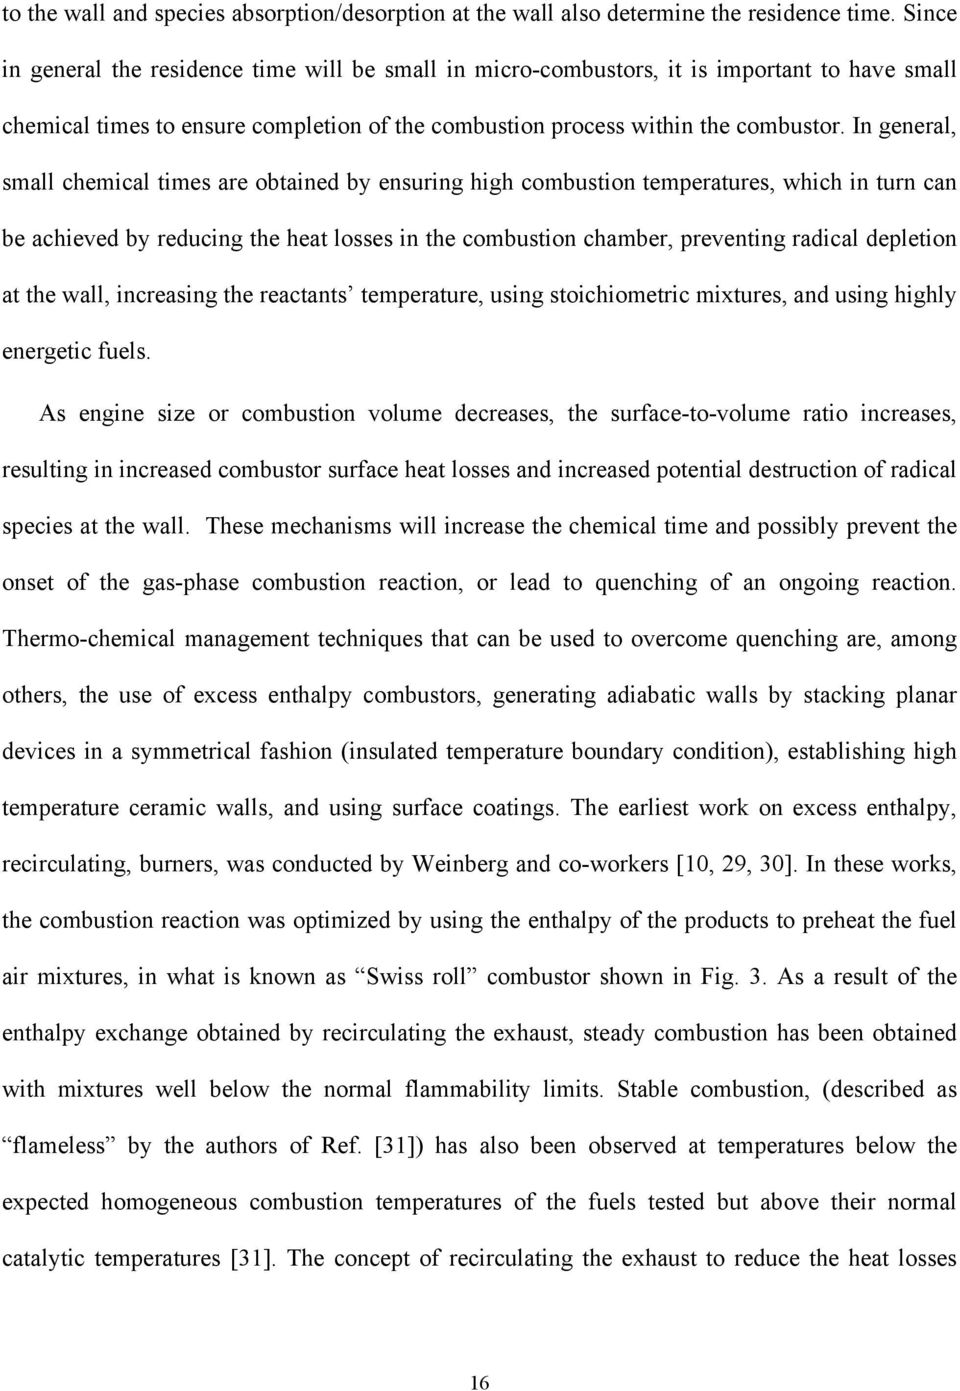 In general, small hemial times are obtained by ensuring high ombustion temperatures, whih in turn an be ahieved by reduing the heat losses in the ombustion hamber, preventing radial depletion at the